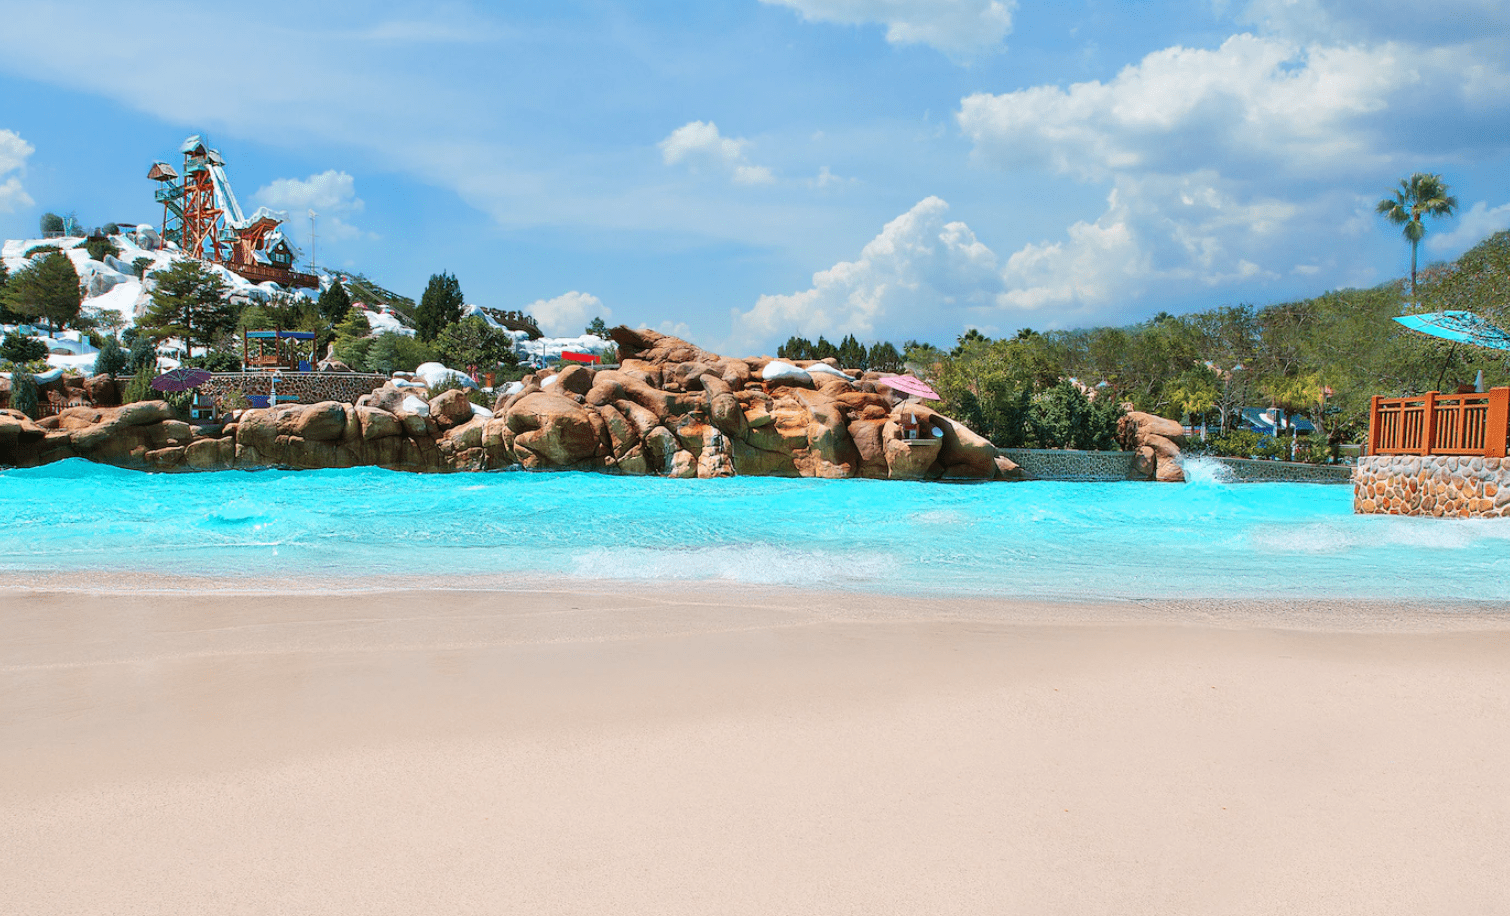 Disney's Blizzard Beach Water Park 101